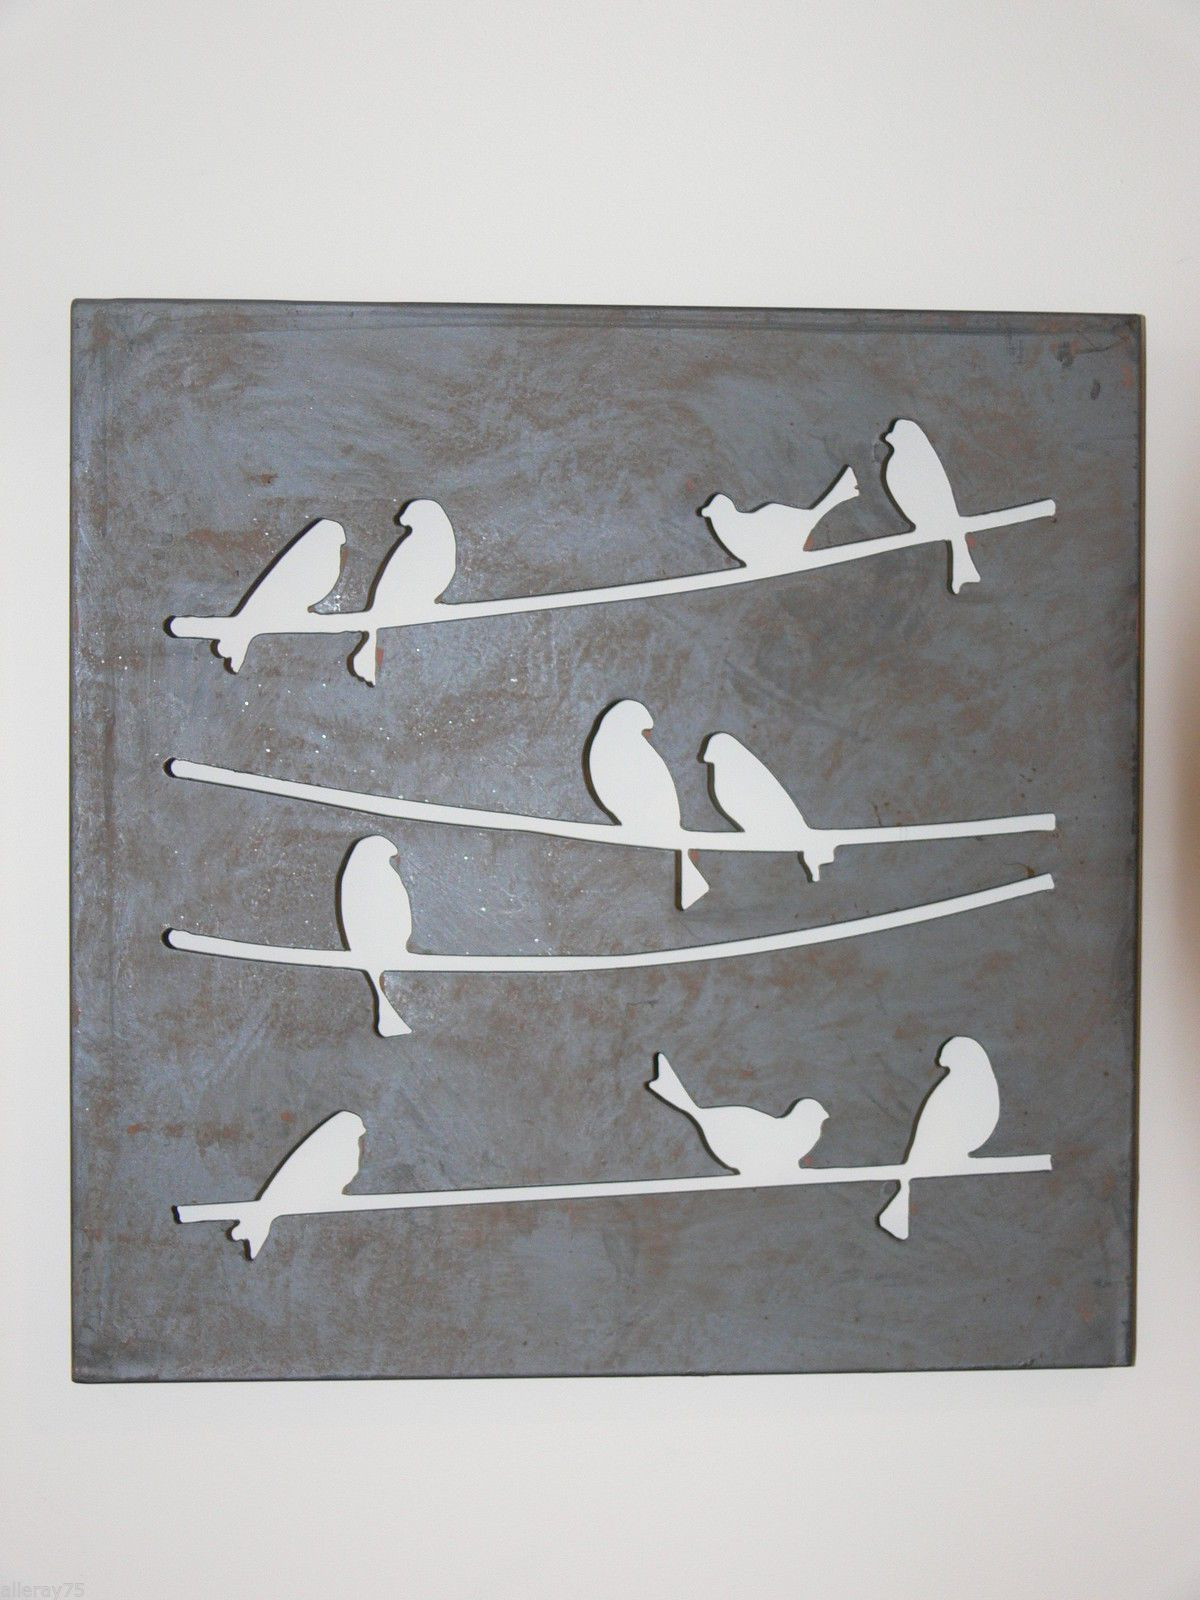 French wall art decor birds metal cut out new rust indoor outdoor ebay